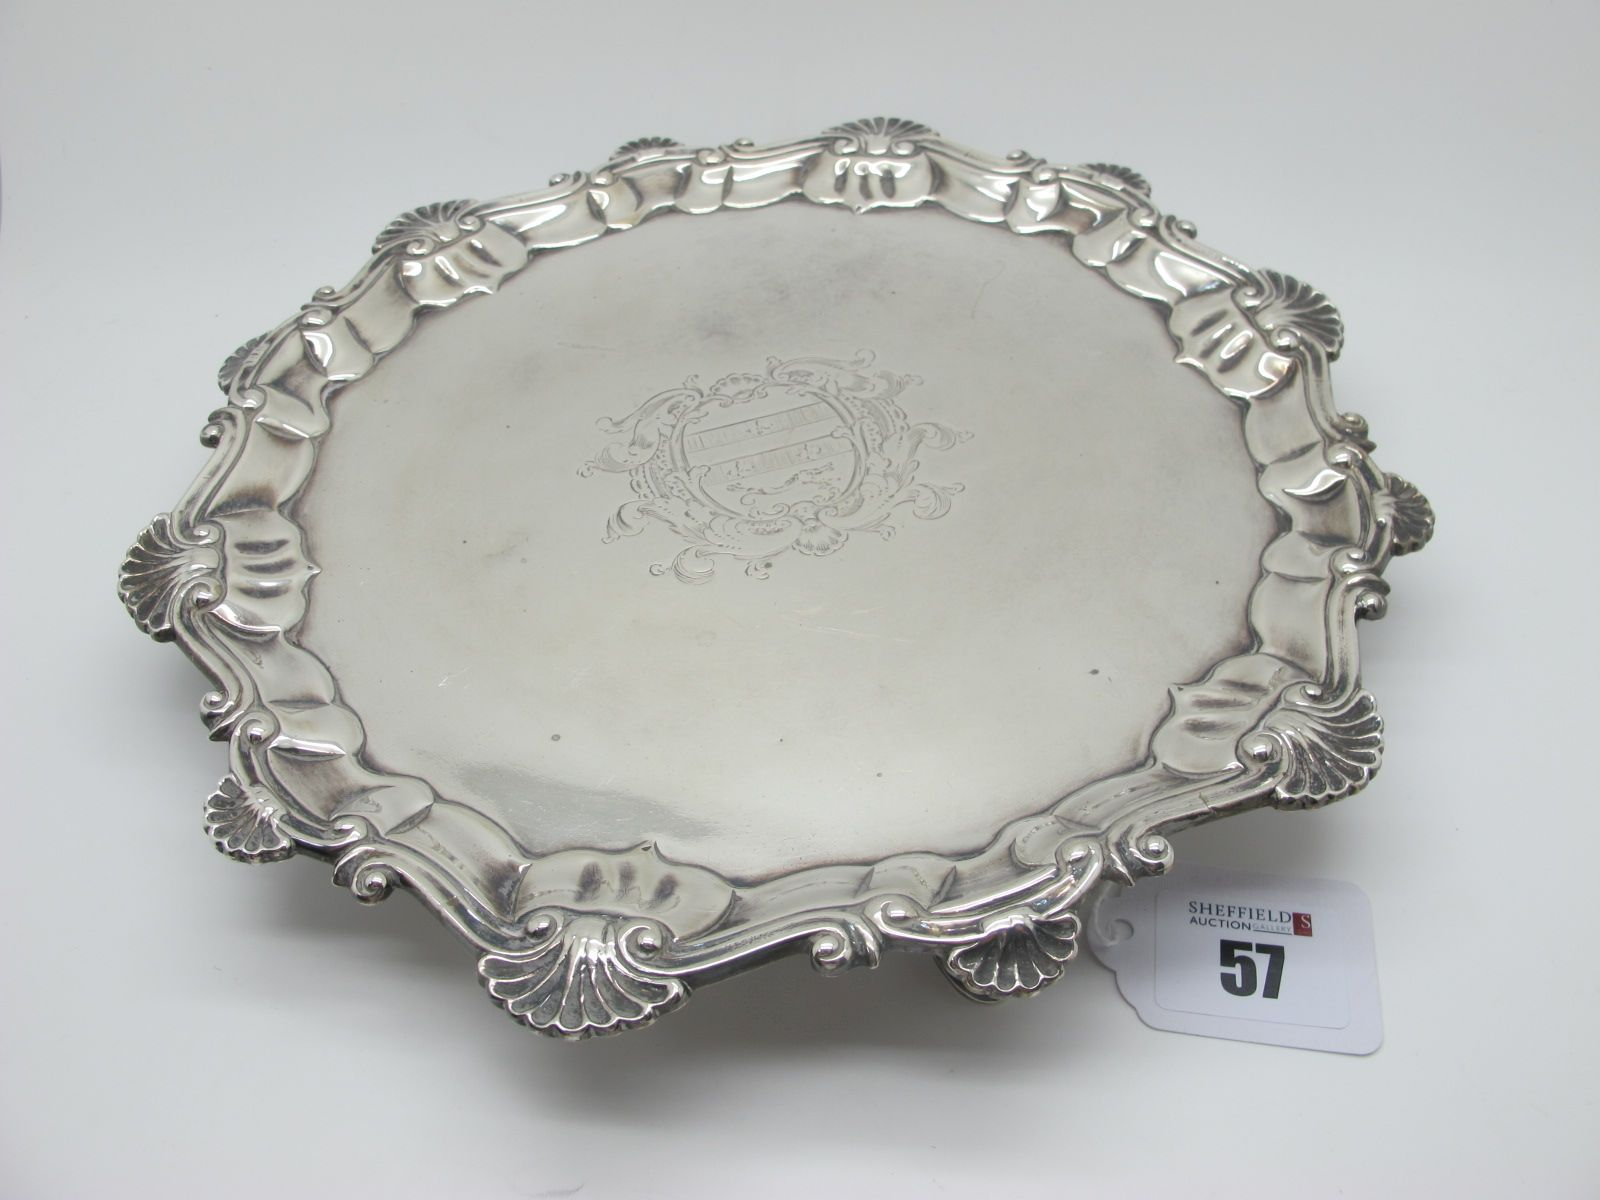 A Hallmarked Silver Salver, Ebenezer Coker, London 1755, of circular form, within shaped shell and